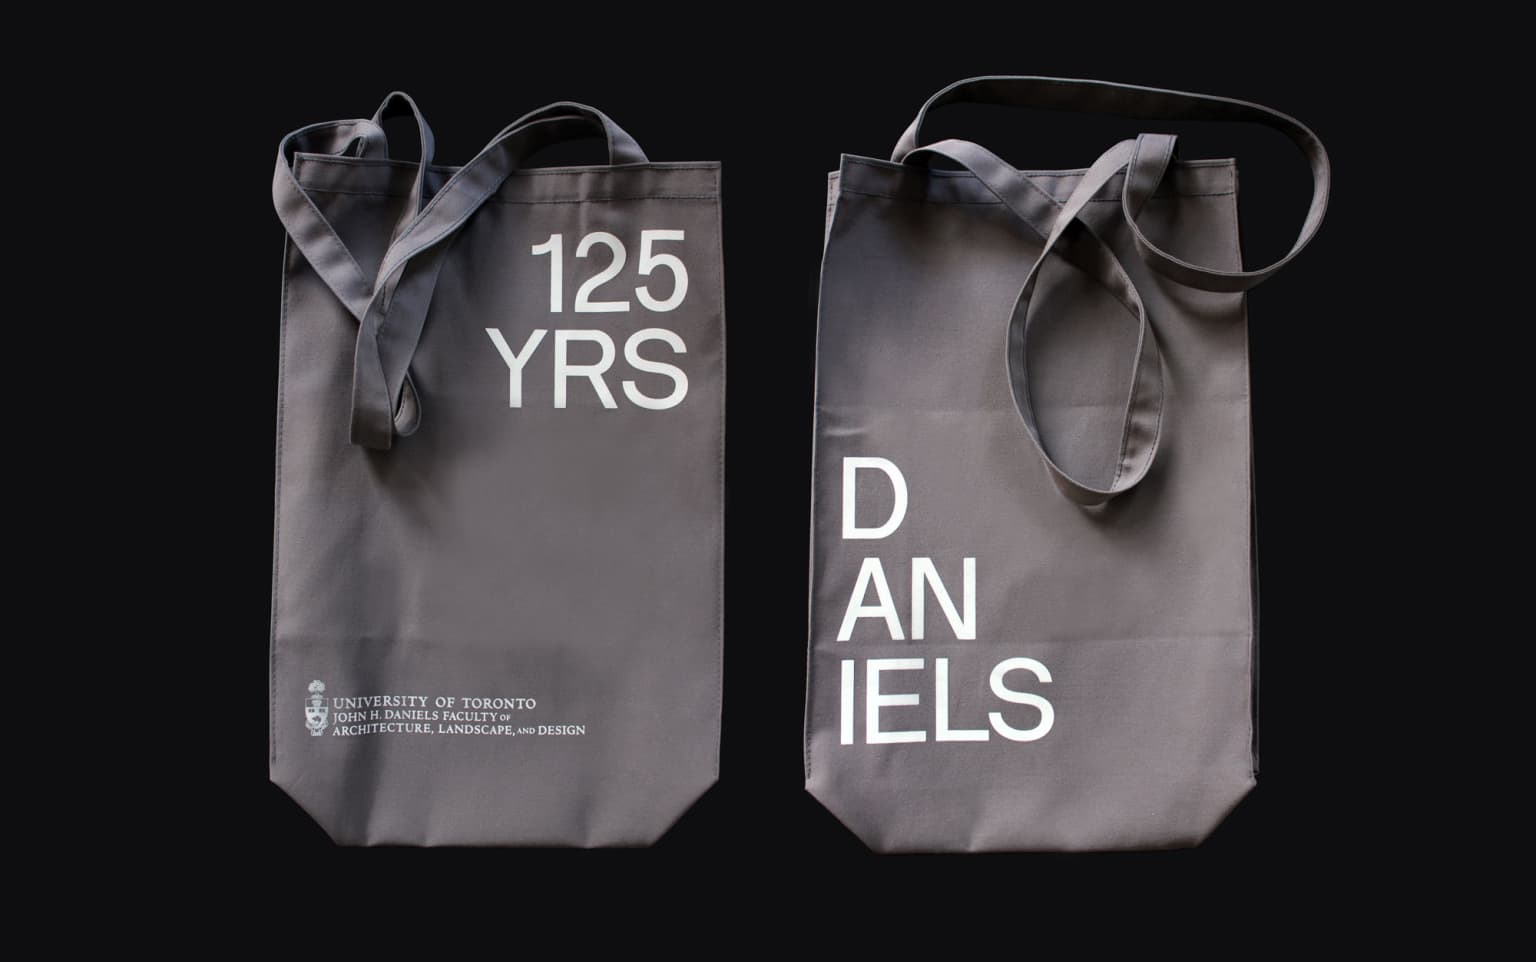 Daniels Faculty of Architecture, Landscape, and Design, University of Toronto